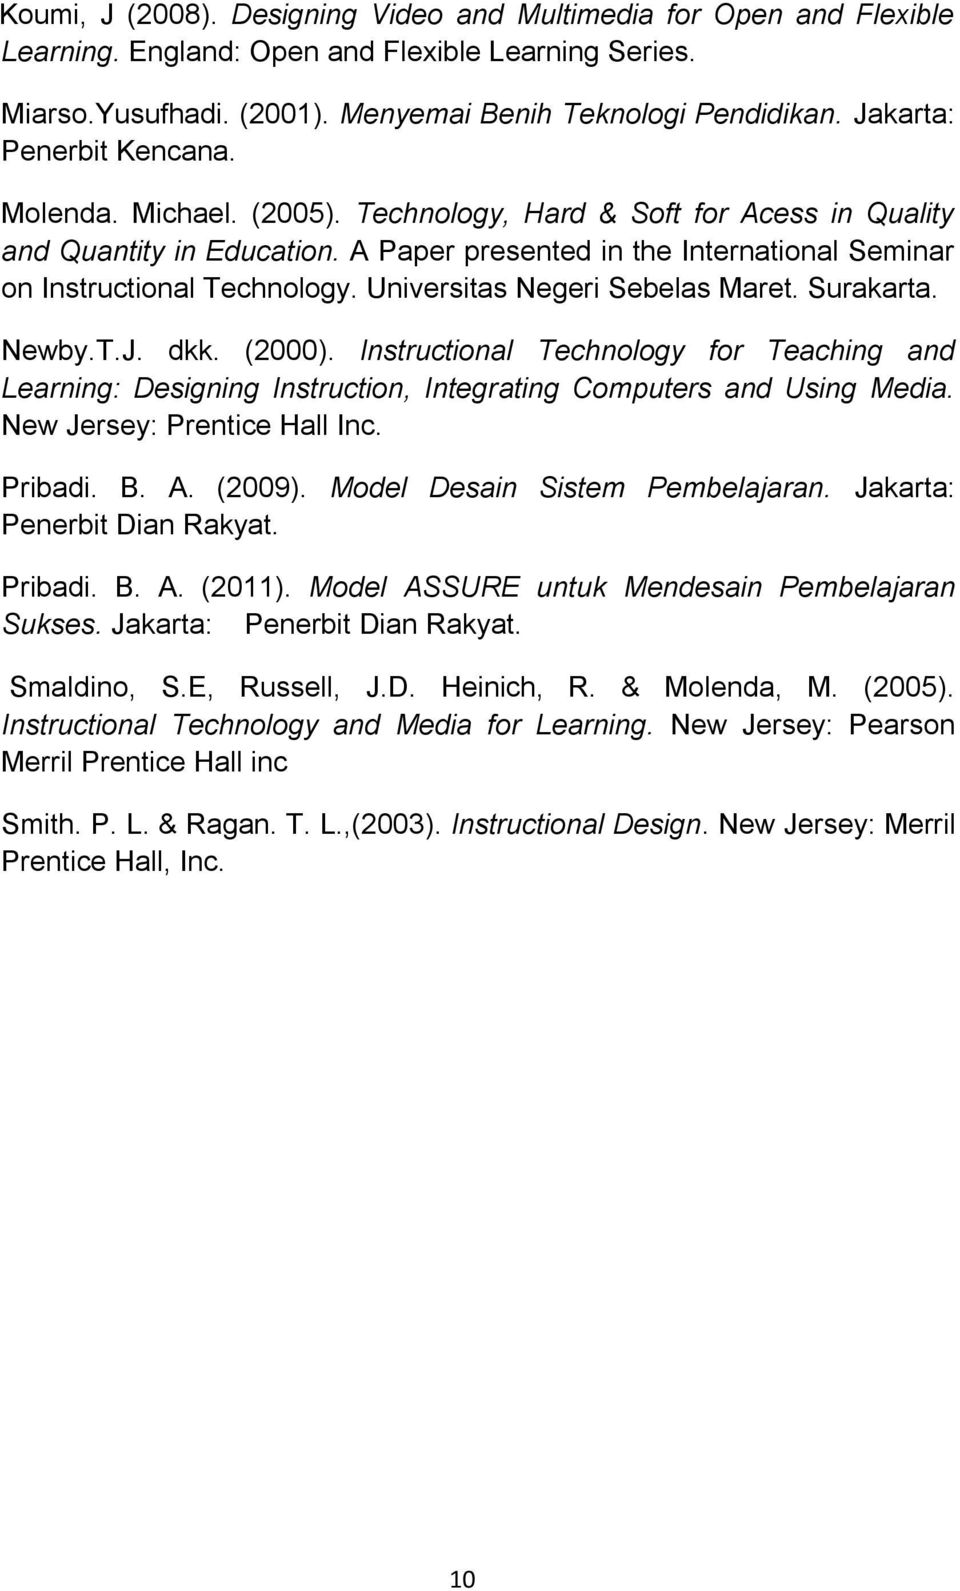 Universitas Negeri Sebelas Maret. Surakarta. Newby.T.J. dkk. (2000). Instructional Technology for Teaching and Learning: Designing Instruction, Integrating Computers and Using Media.